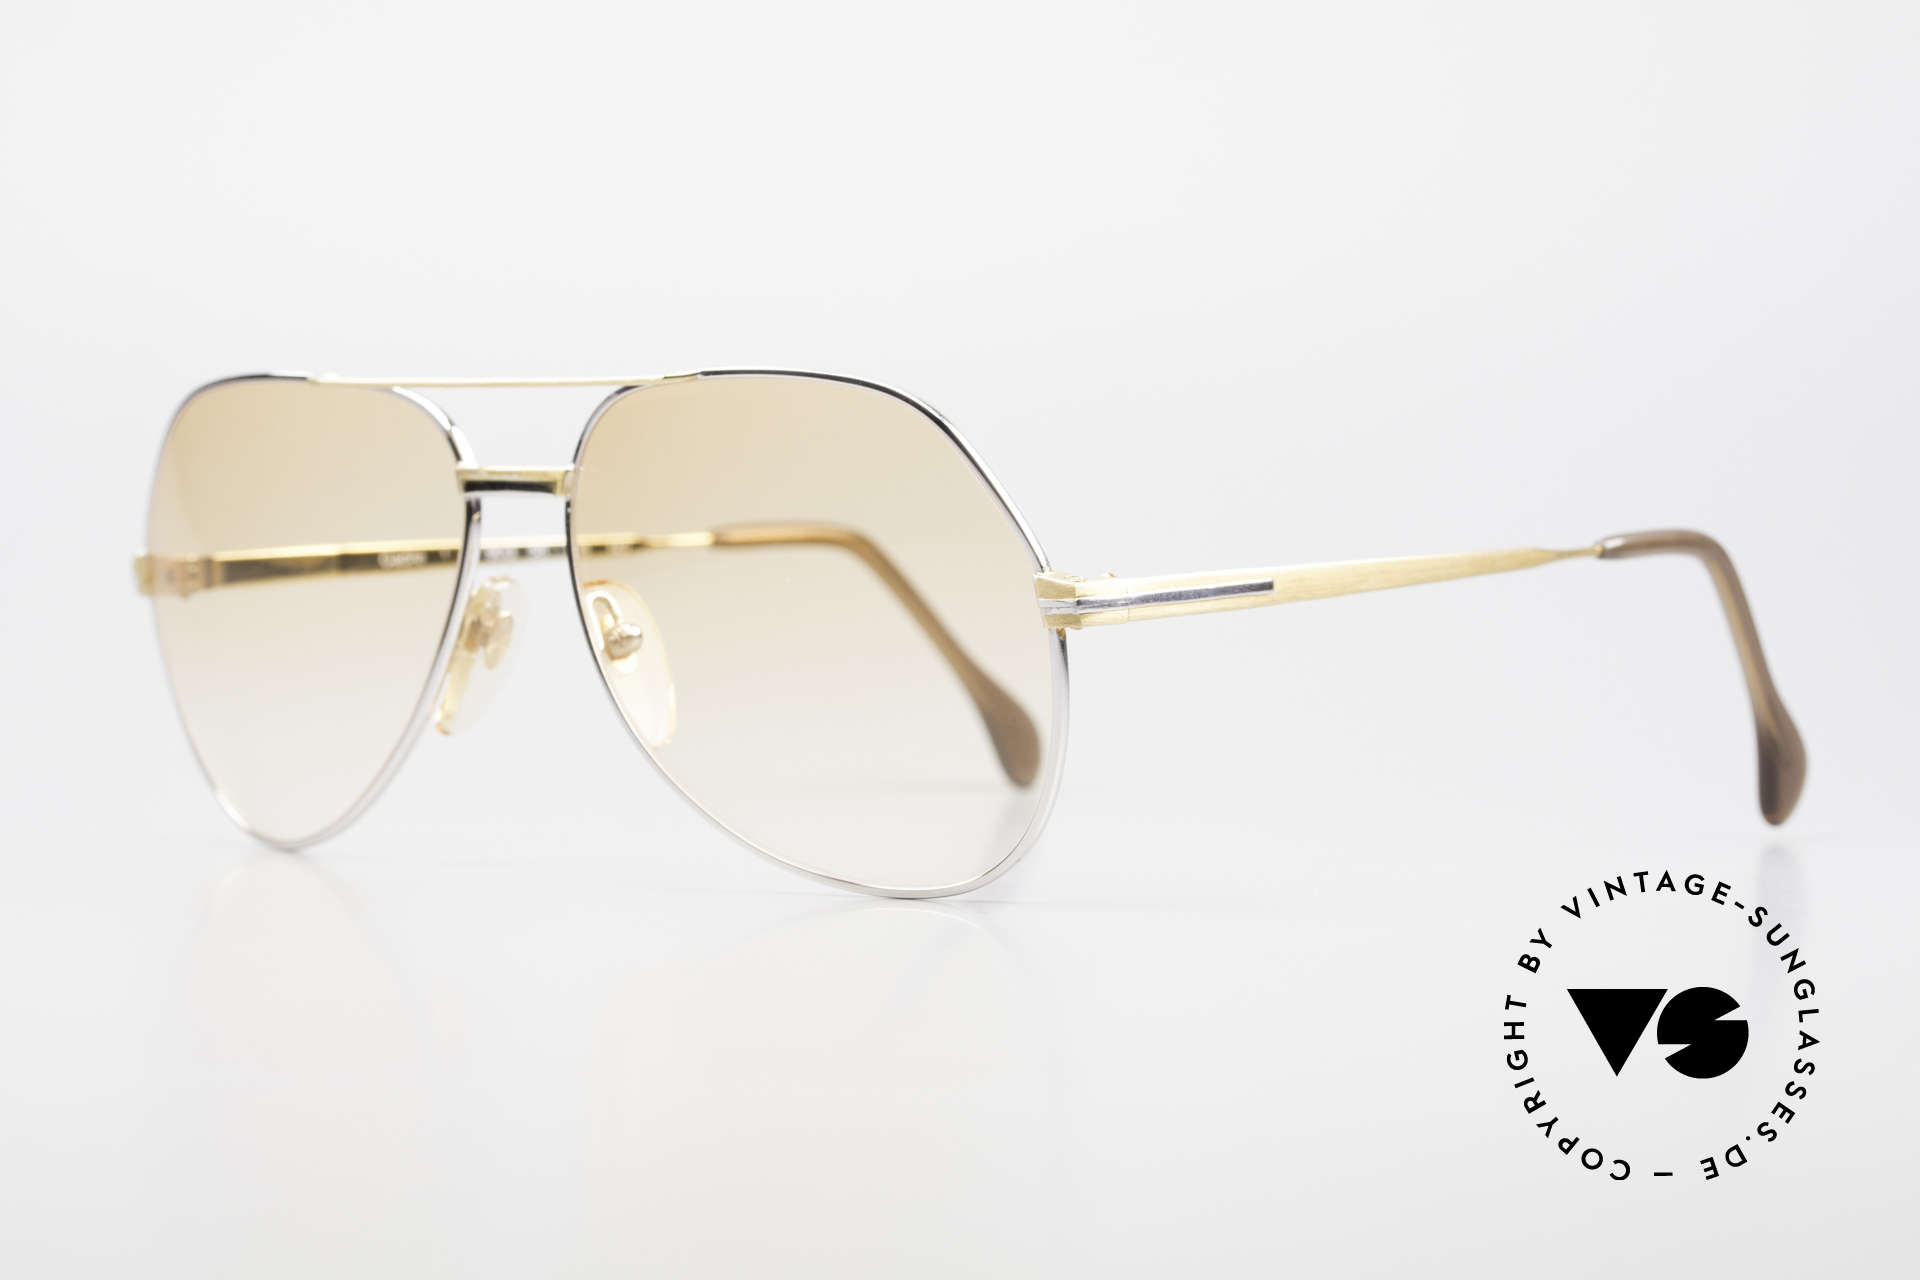 Zollitsch Cadre 1 West Germany Sunglasses 80's, interesting alternative to the ordinary 'aviator style', Made for Men